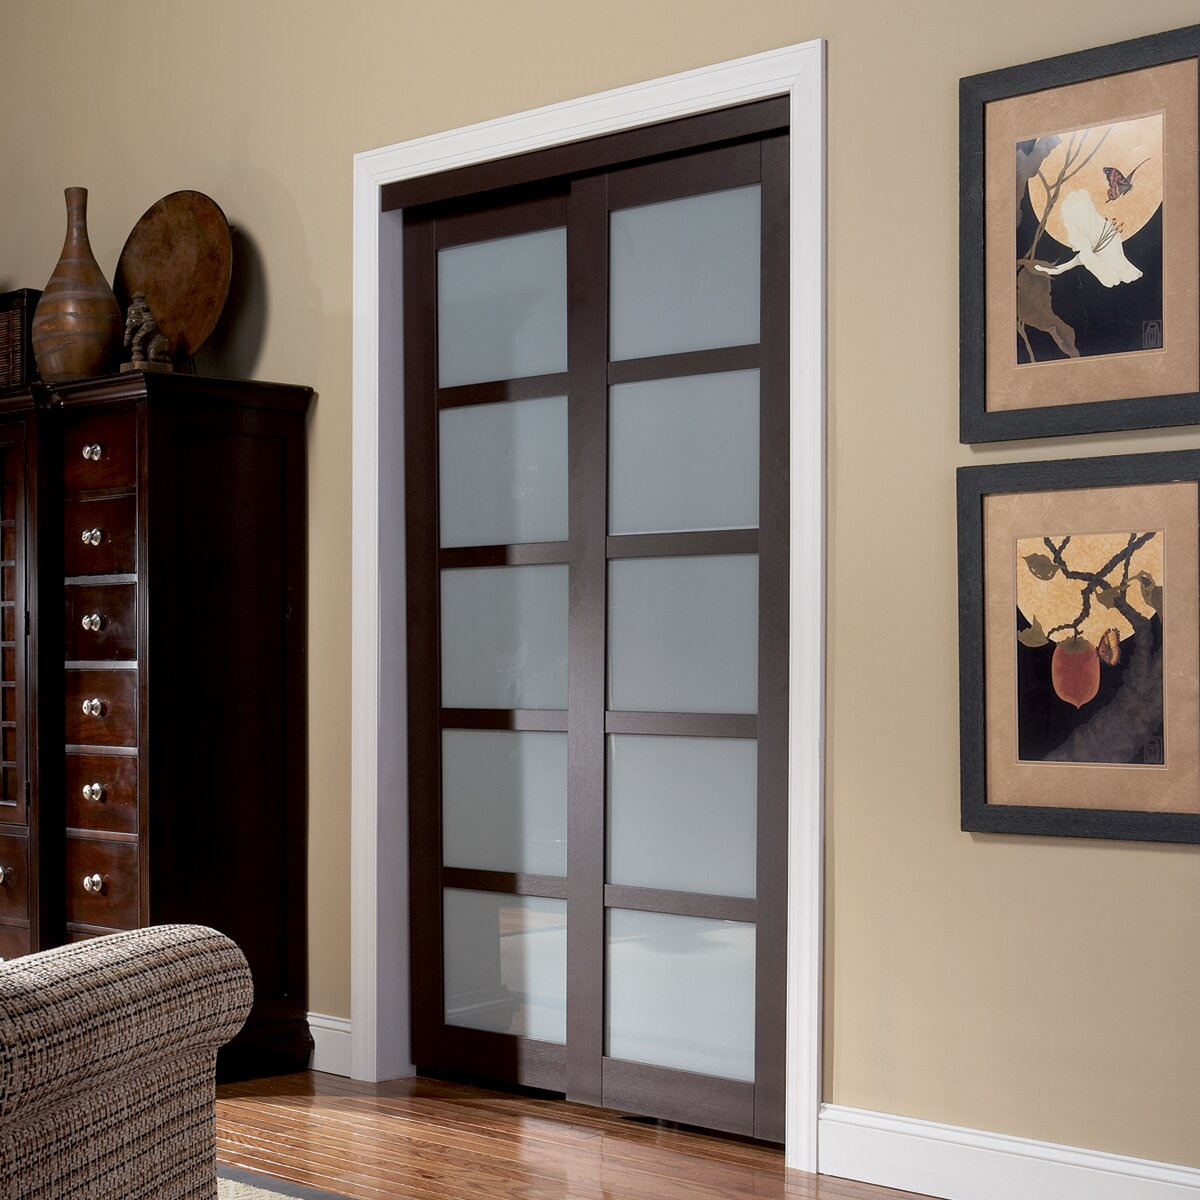 Erias Home Designs Baldarassario 2 Panel Painted Sliding Interior Door Reviews Wayfair Supply